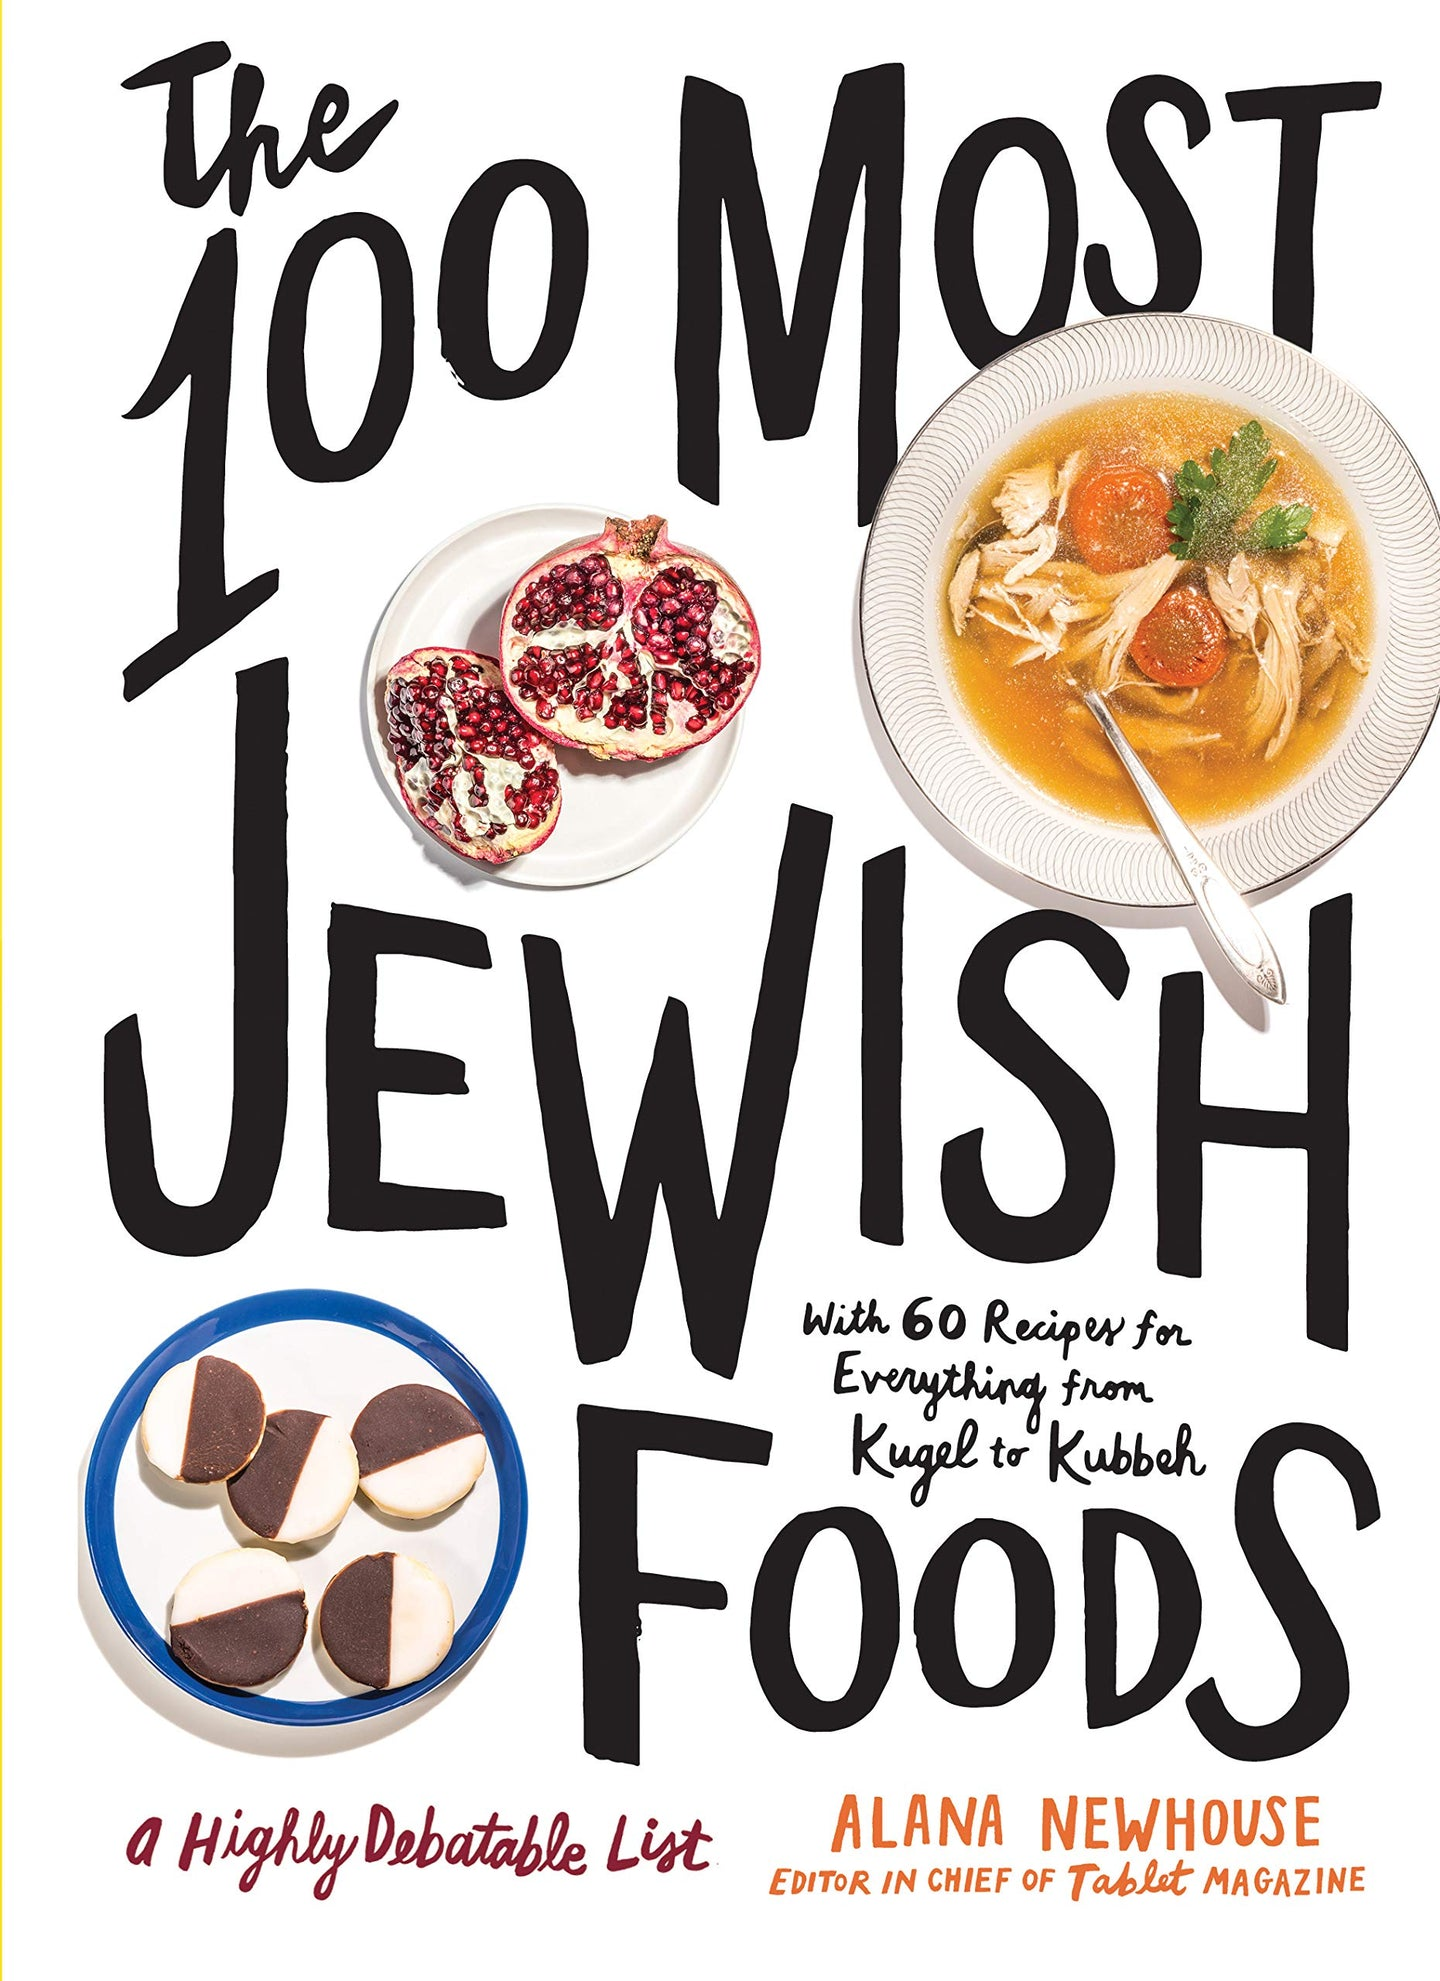 The 100 Most Jewish Foods - Alana Newhouse